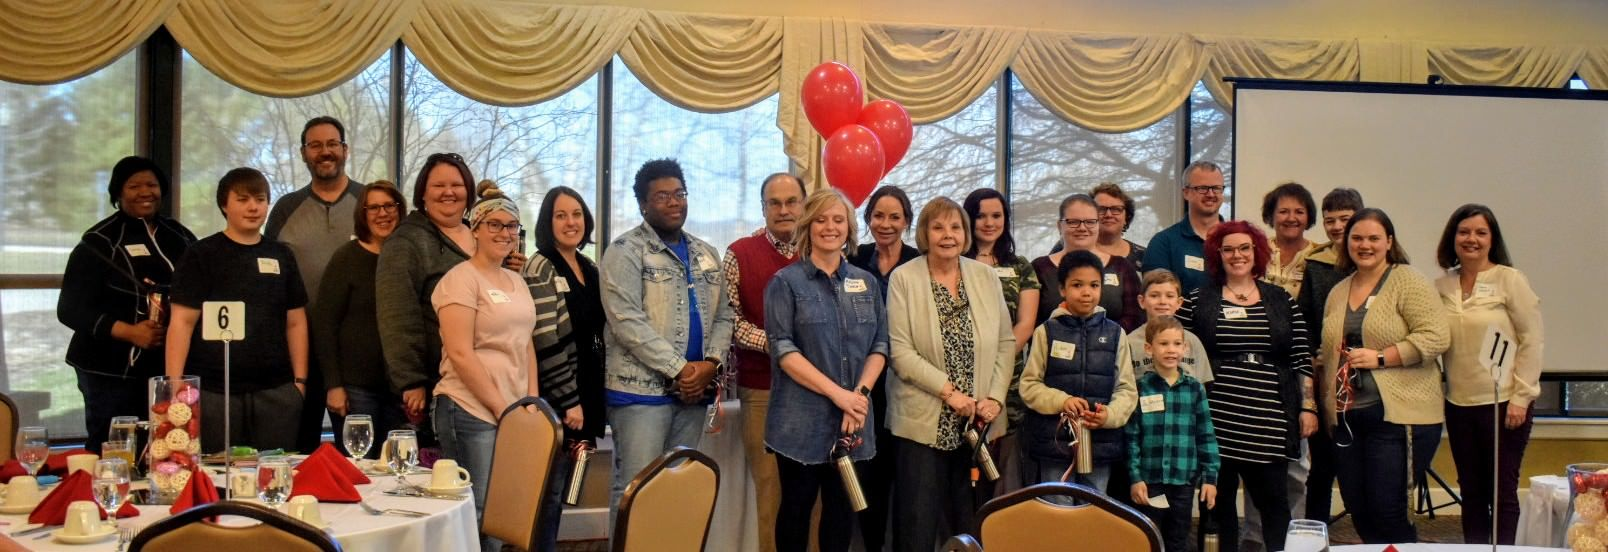 We appreciate our volunteers who attended our Appreciation Breakfast in March!